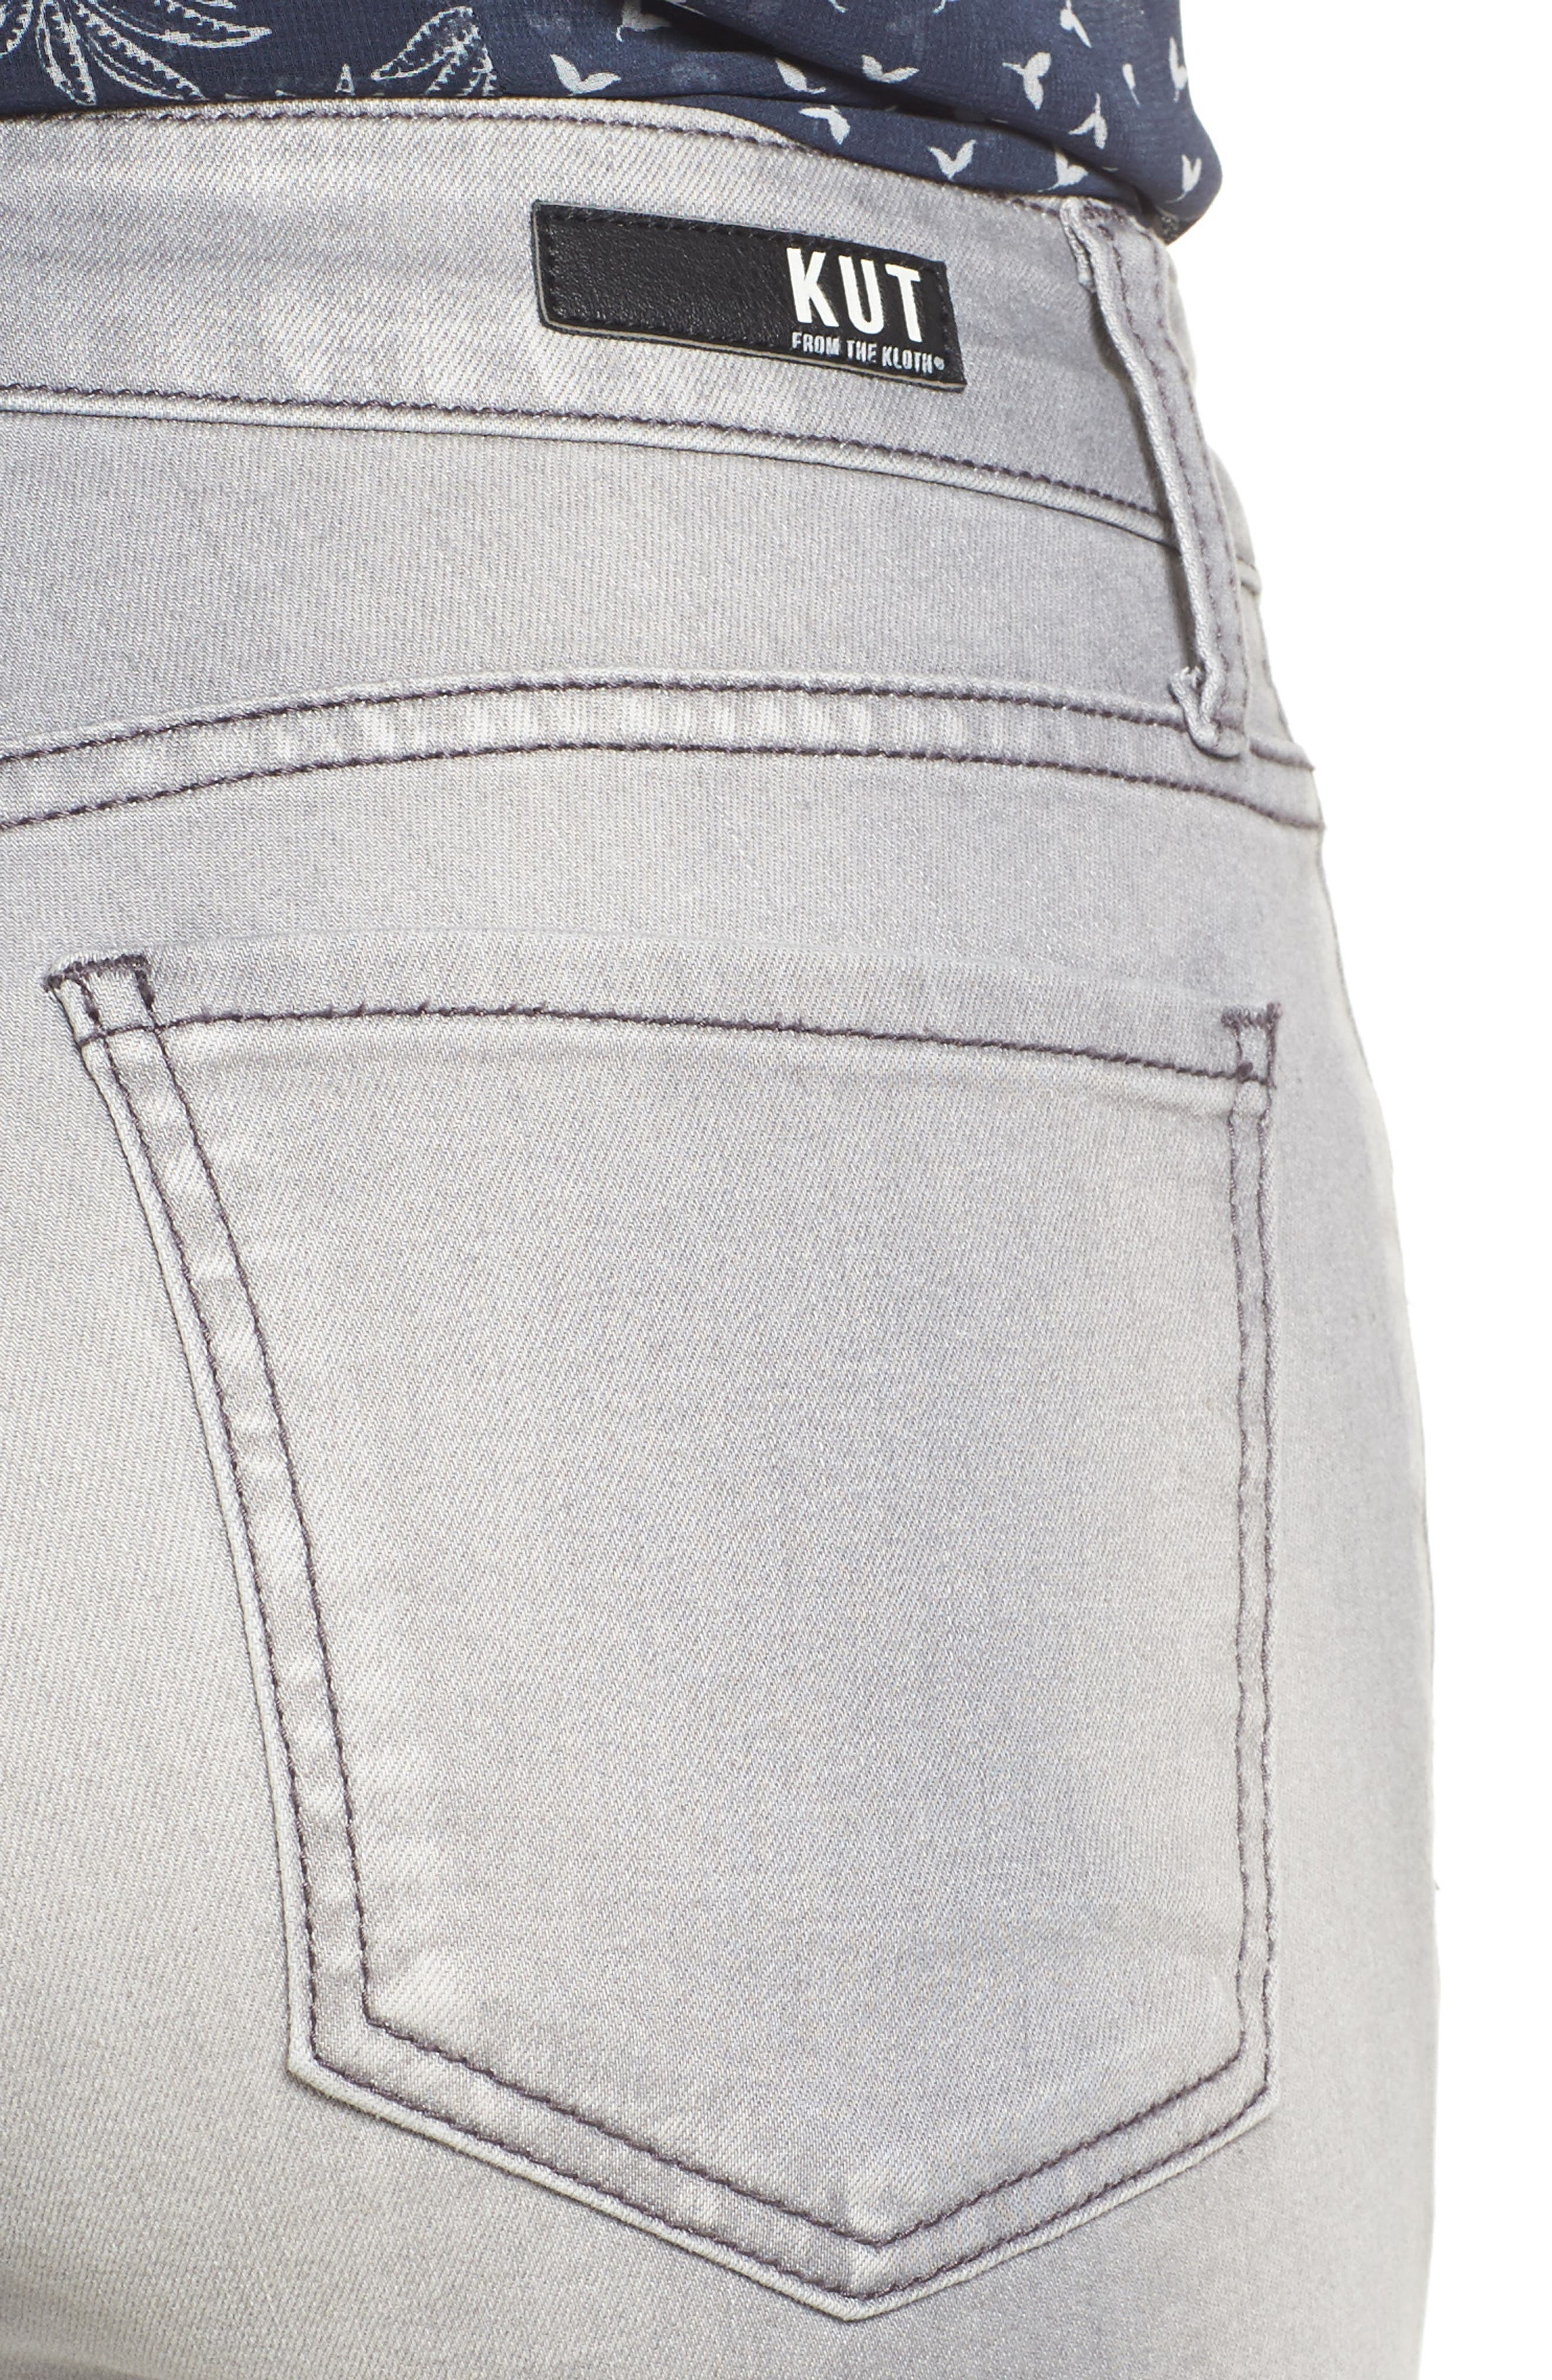 Alternate Image 4  - Kut from the Kloth Mia Skinny Jeans (Prevailed)